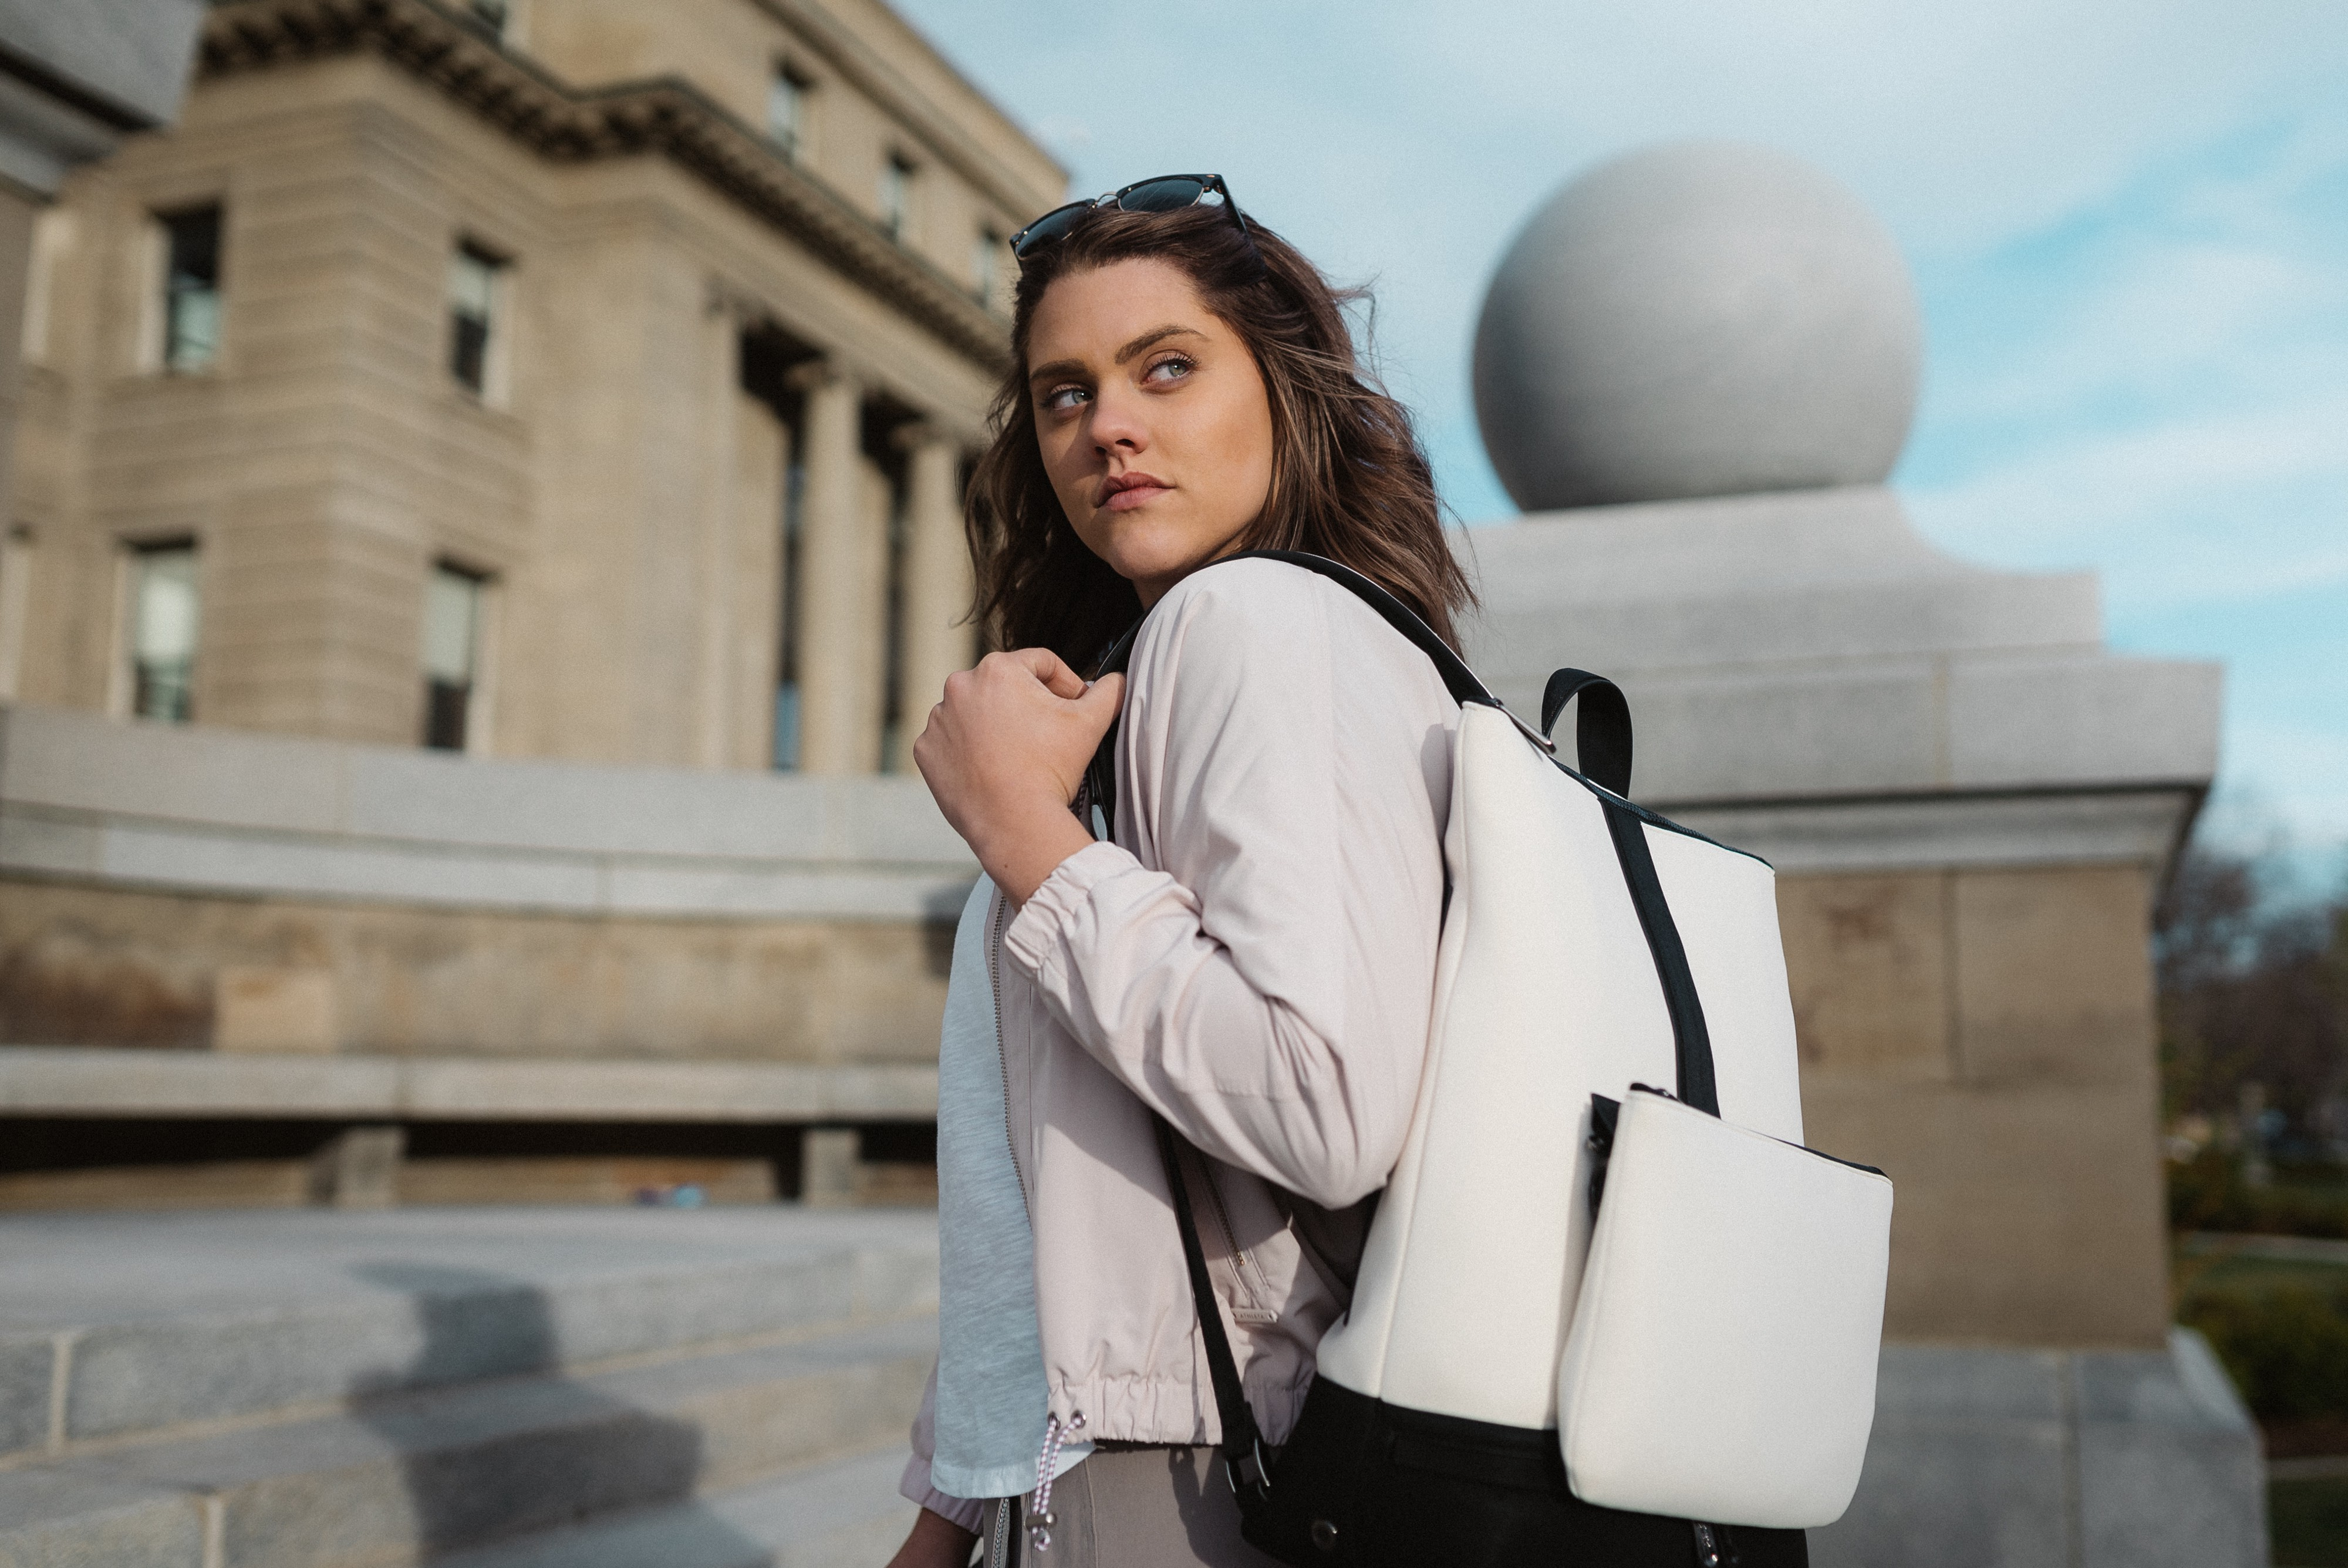 A woman with brown hair stands on some steps, looking over her shoulder. She has a white backpack style handbag slung over her shoulder.